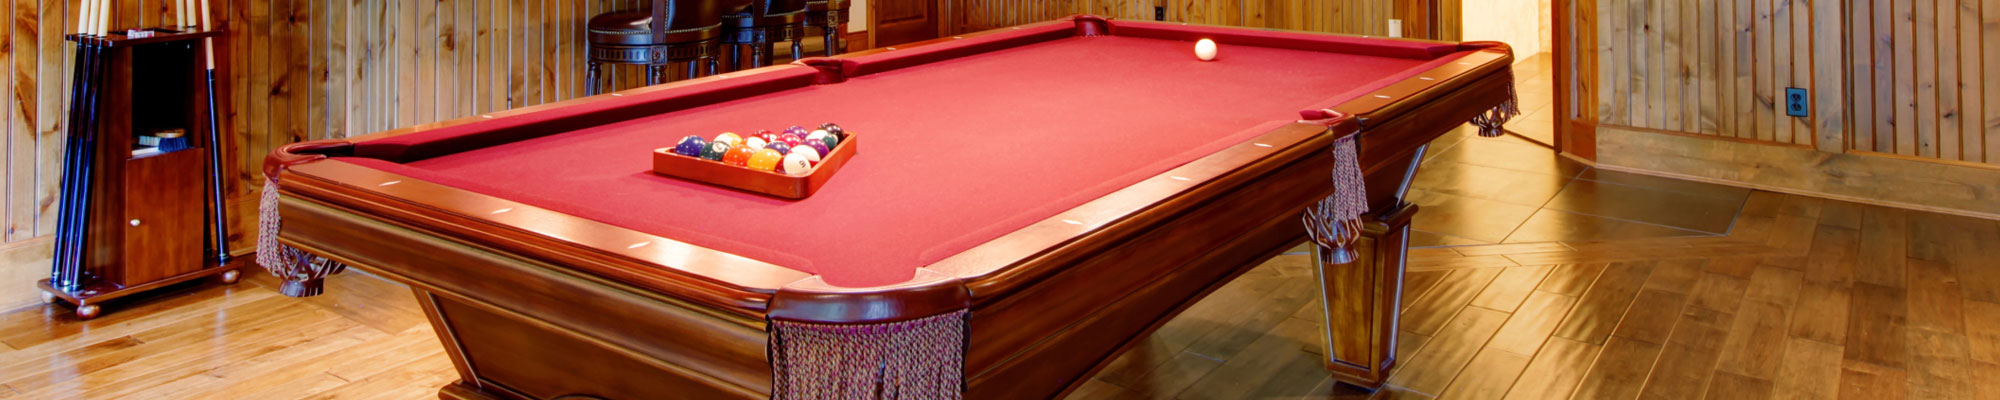 Home Page Pool Table Company Dover PA Pro Action Billiards - Pool table movers lancaster pa